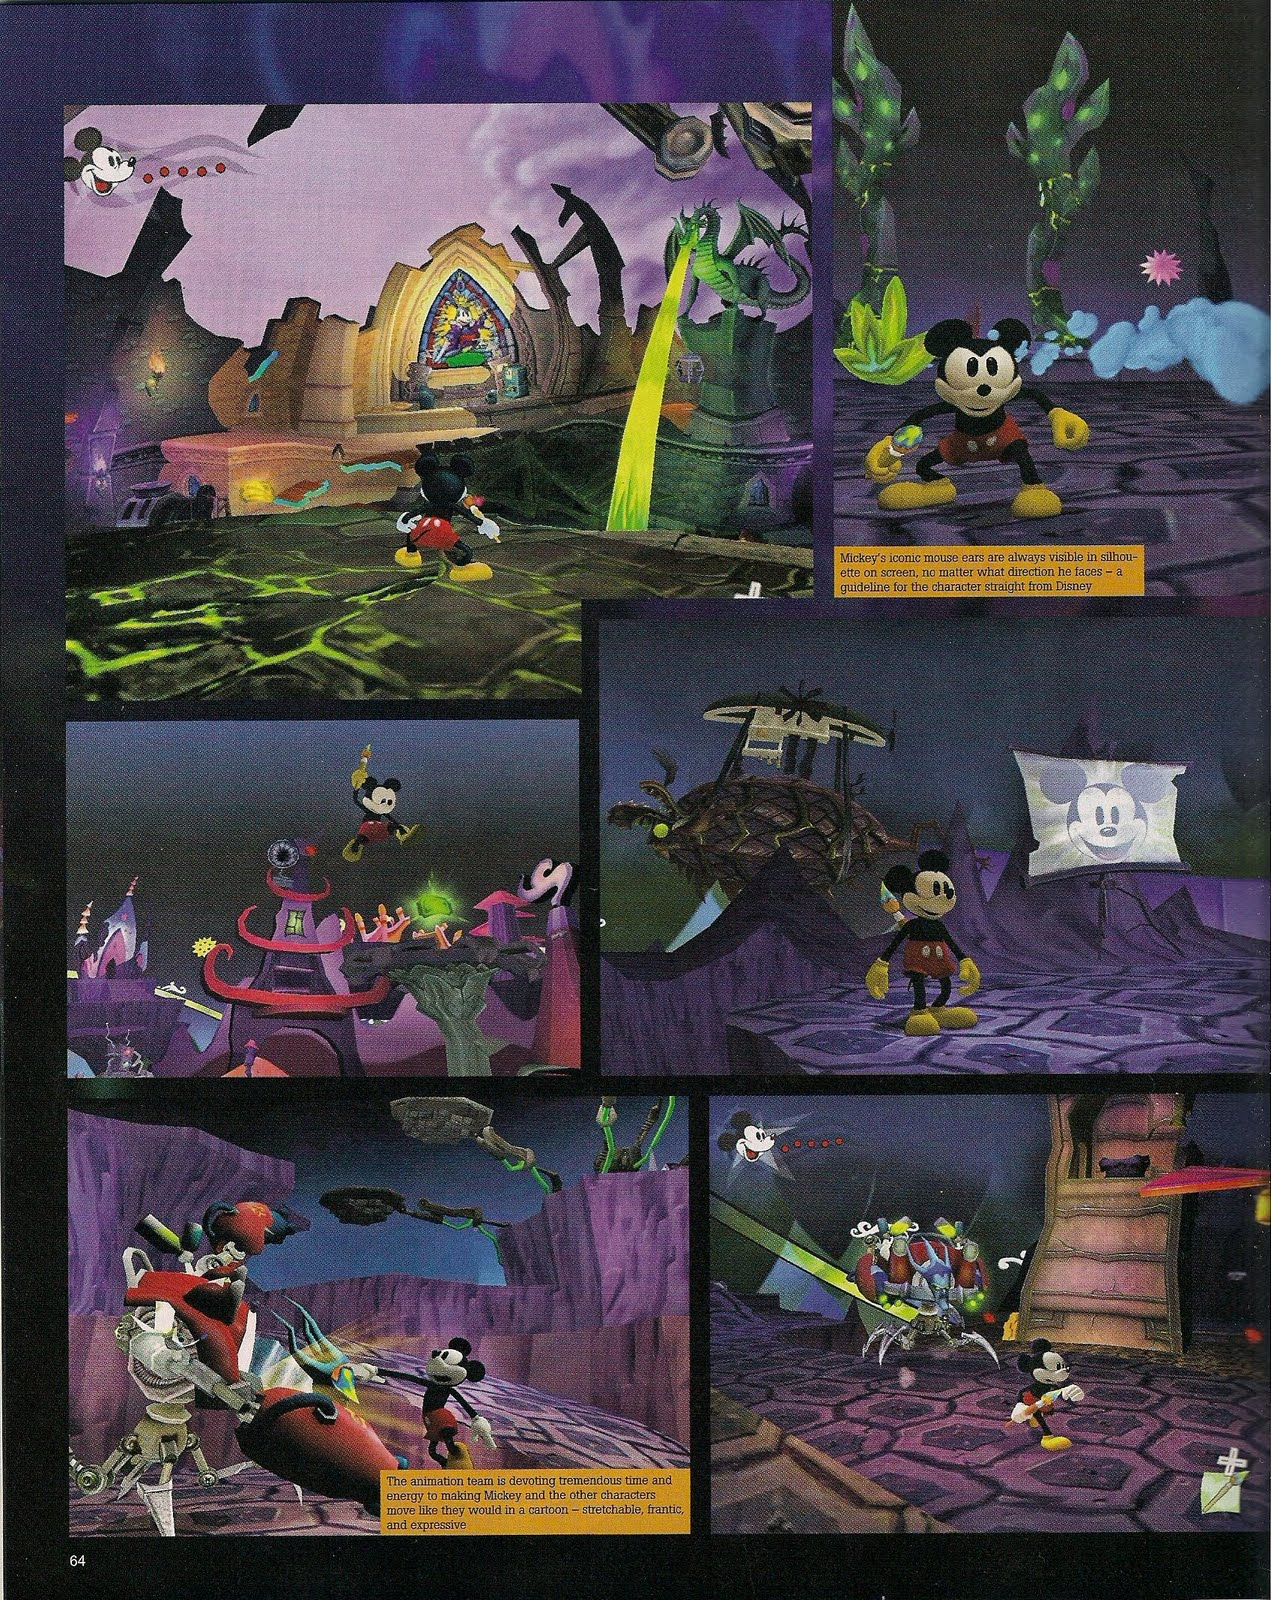 EpicMickey Scans GameInformer 04